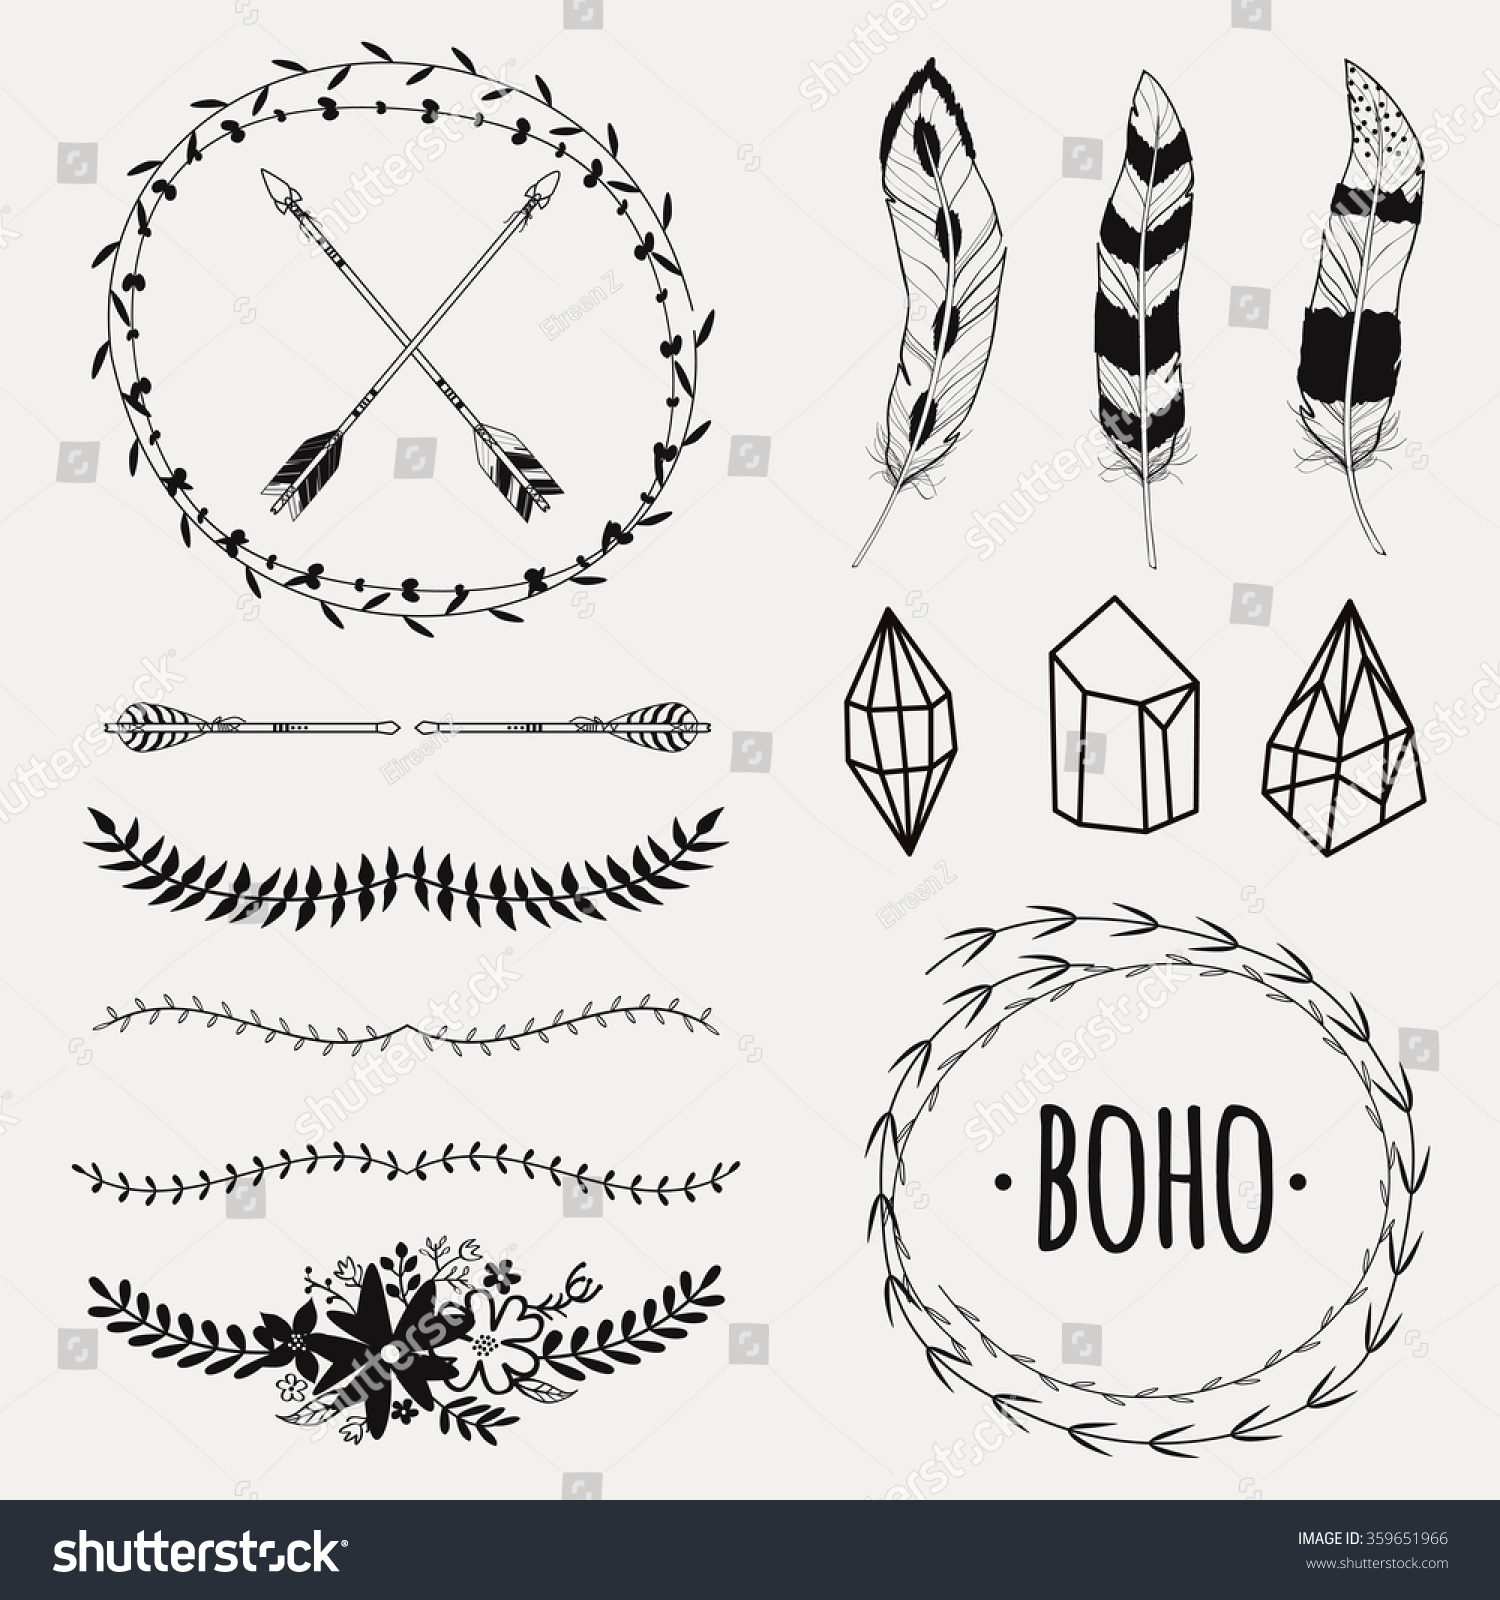 d516b4367c3 Royalty-free Vector monochrome ethnic set with…  359651966 Stock ...